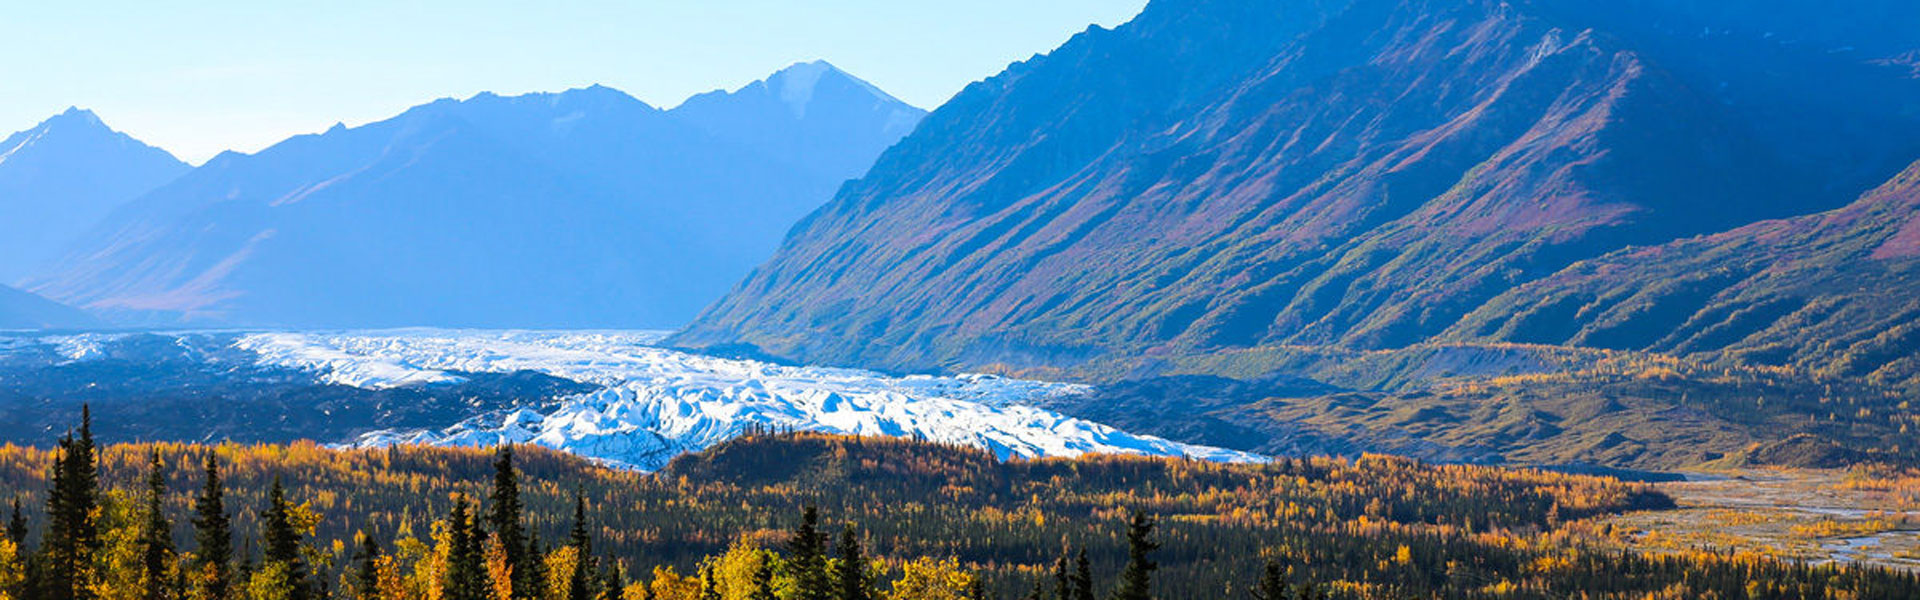 Matanuska Susitna Valley | Day Tours & Activities